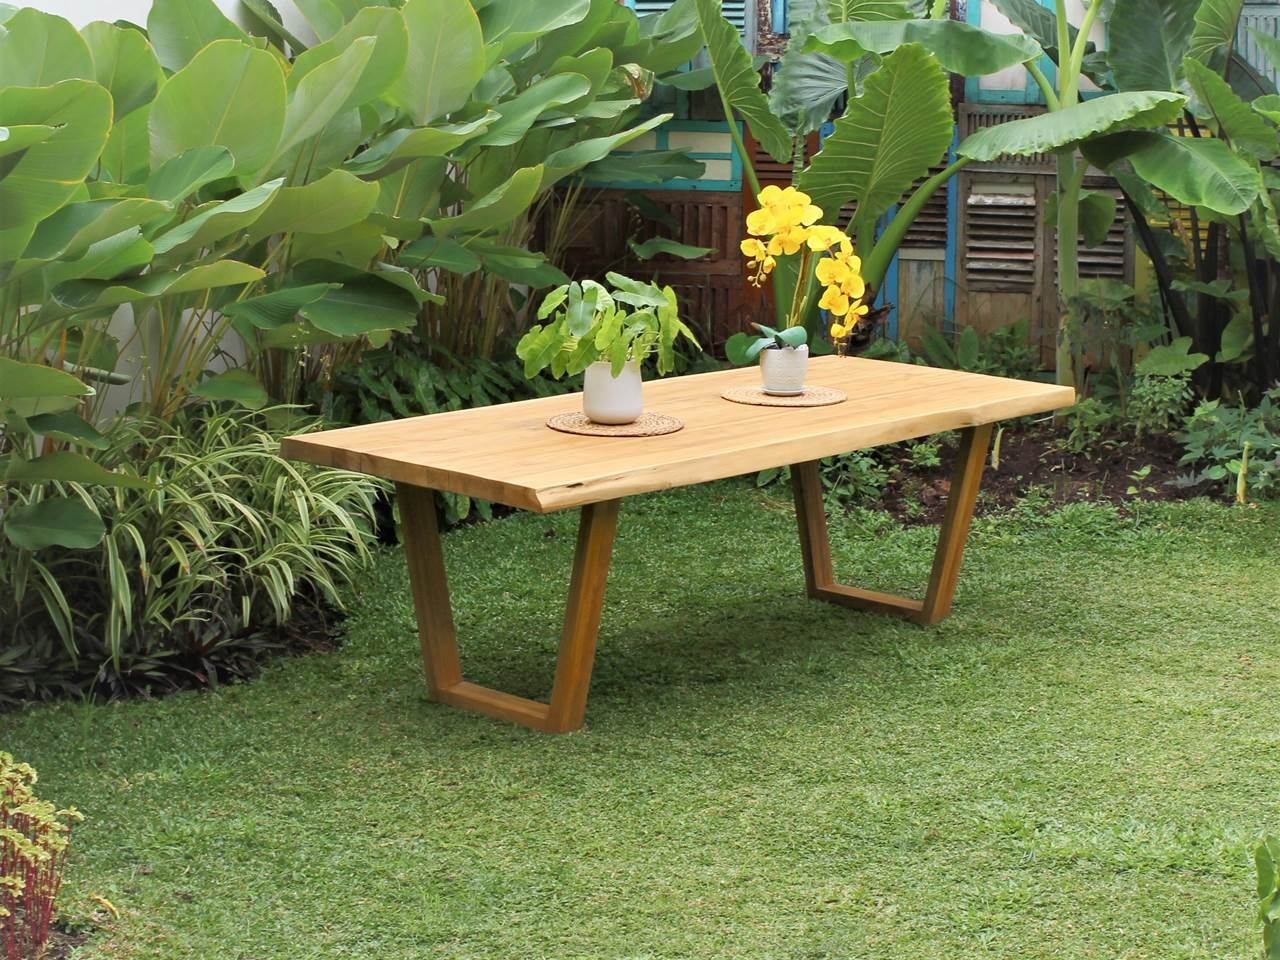 Teak Outdoor Furniture MASSIVE-TECTONA-TABLE